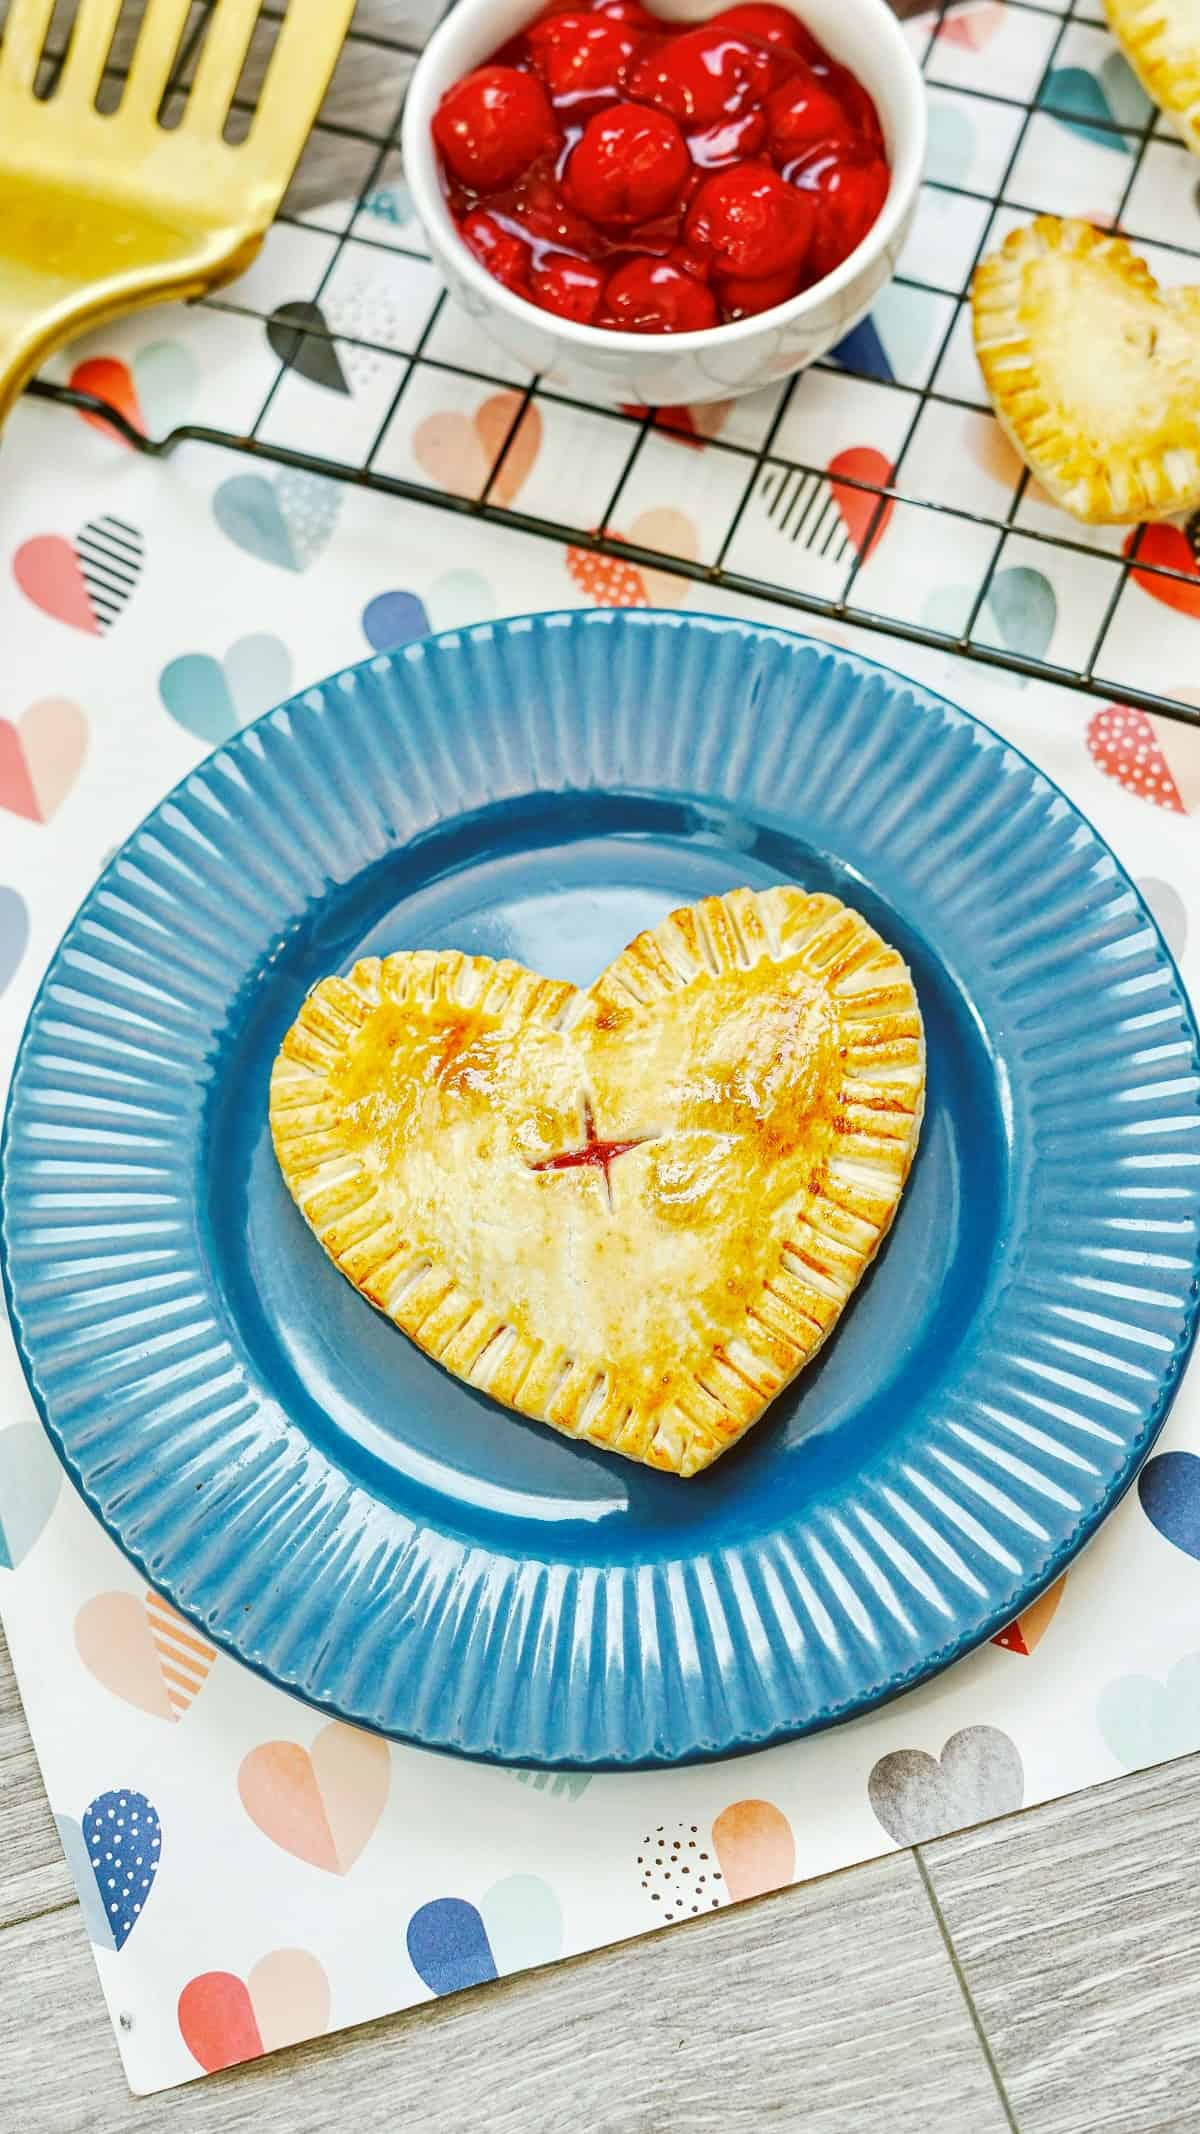 An air fryer hand pie on a blue plate next to a bowl of cherry pie filling and a spatula.